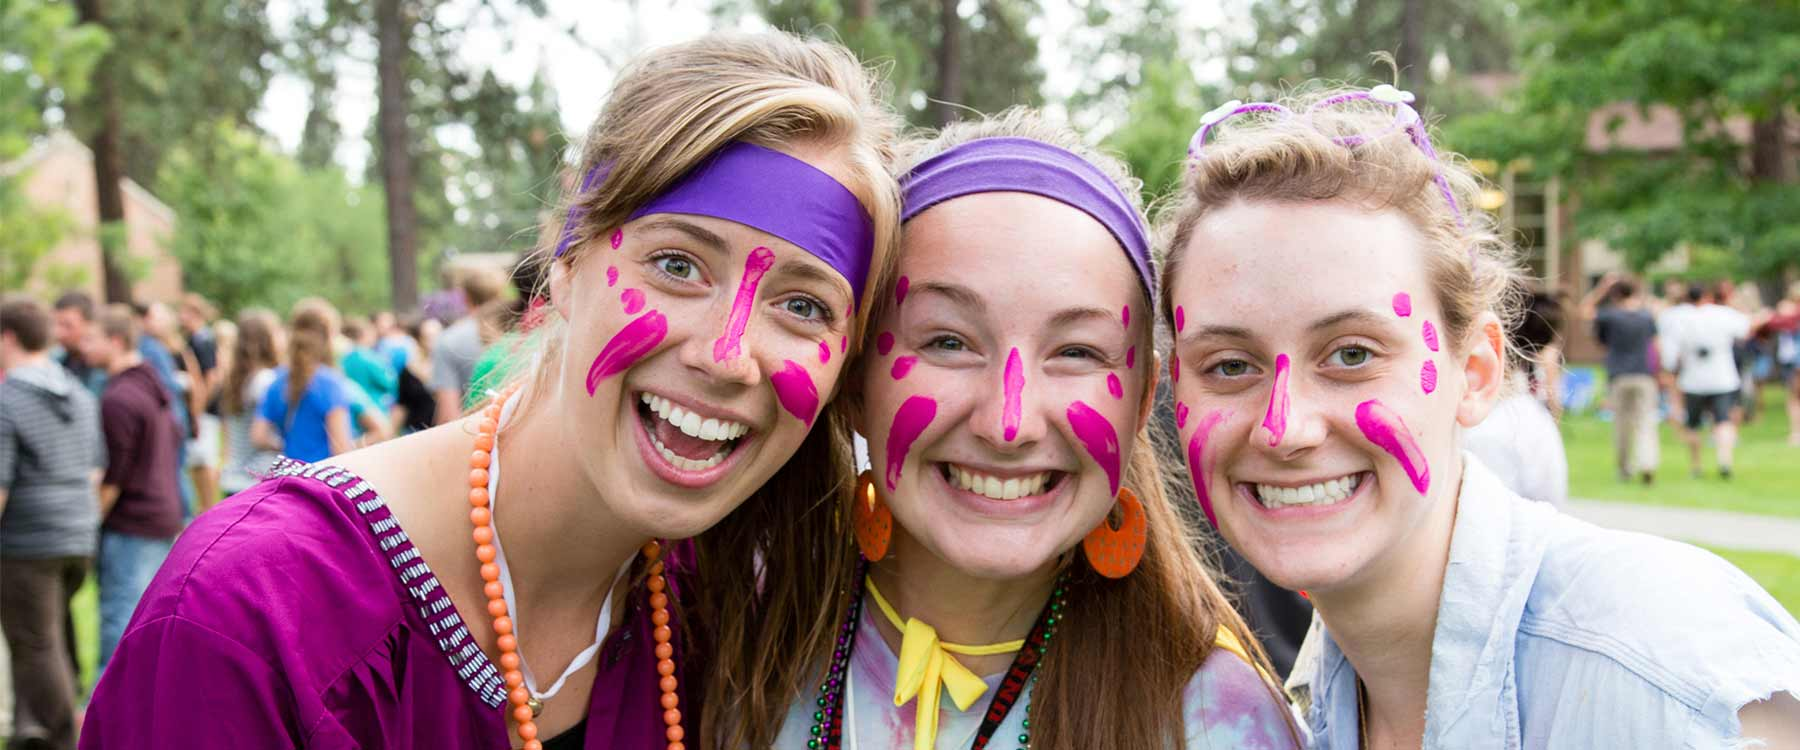 Three students, with headbands and bright face pain, stand close together and smile.